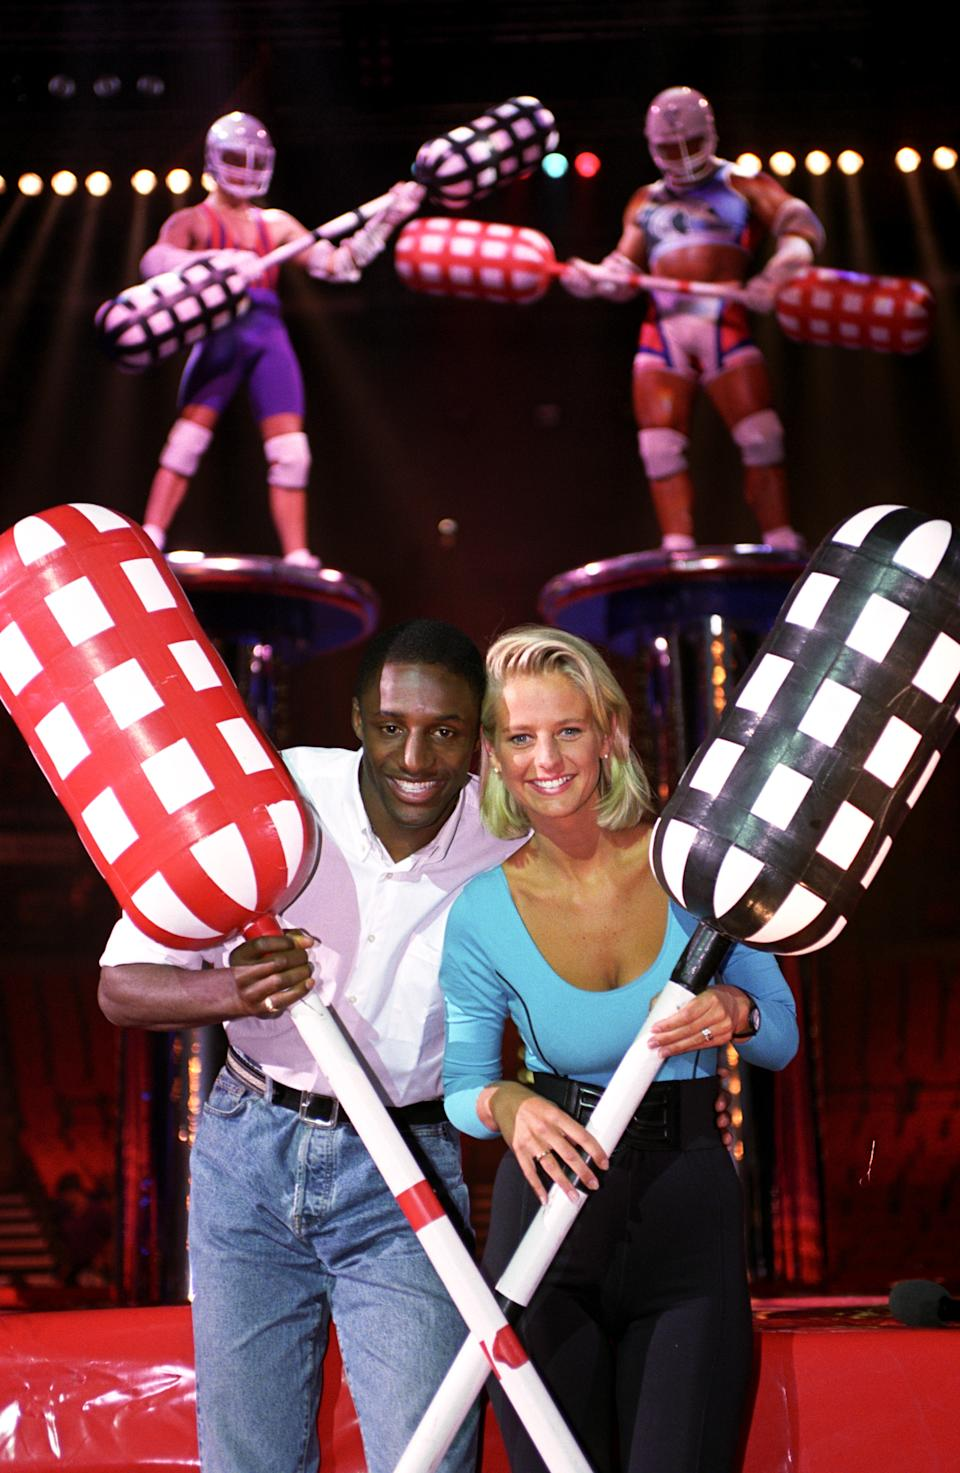 Ulrika Jonsson and John Fashanu, hosts to new LWT show 'Gladiators' being recorded at the NIA Birmingham.   (Photo by David Jones - PA Images/PA Images via Getty Images)